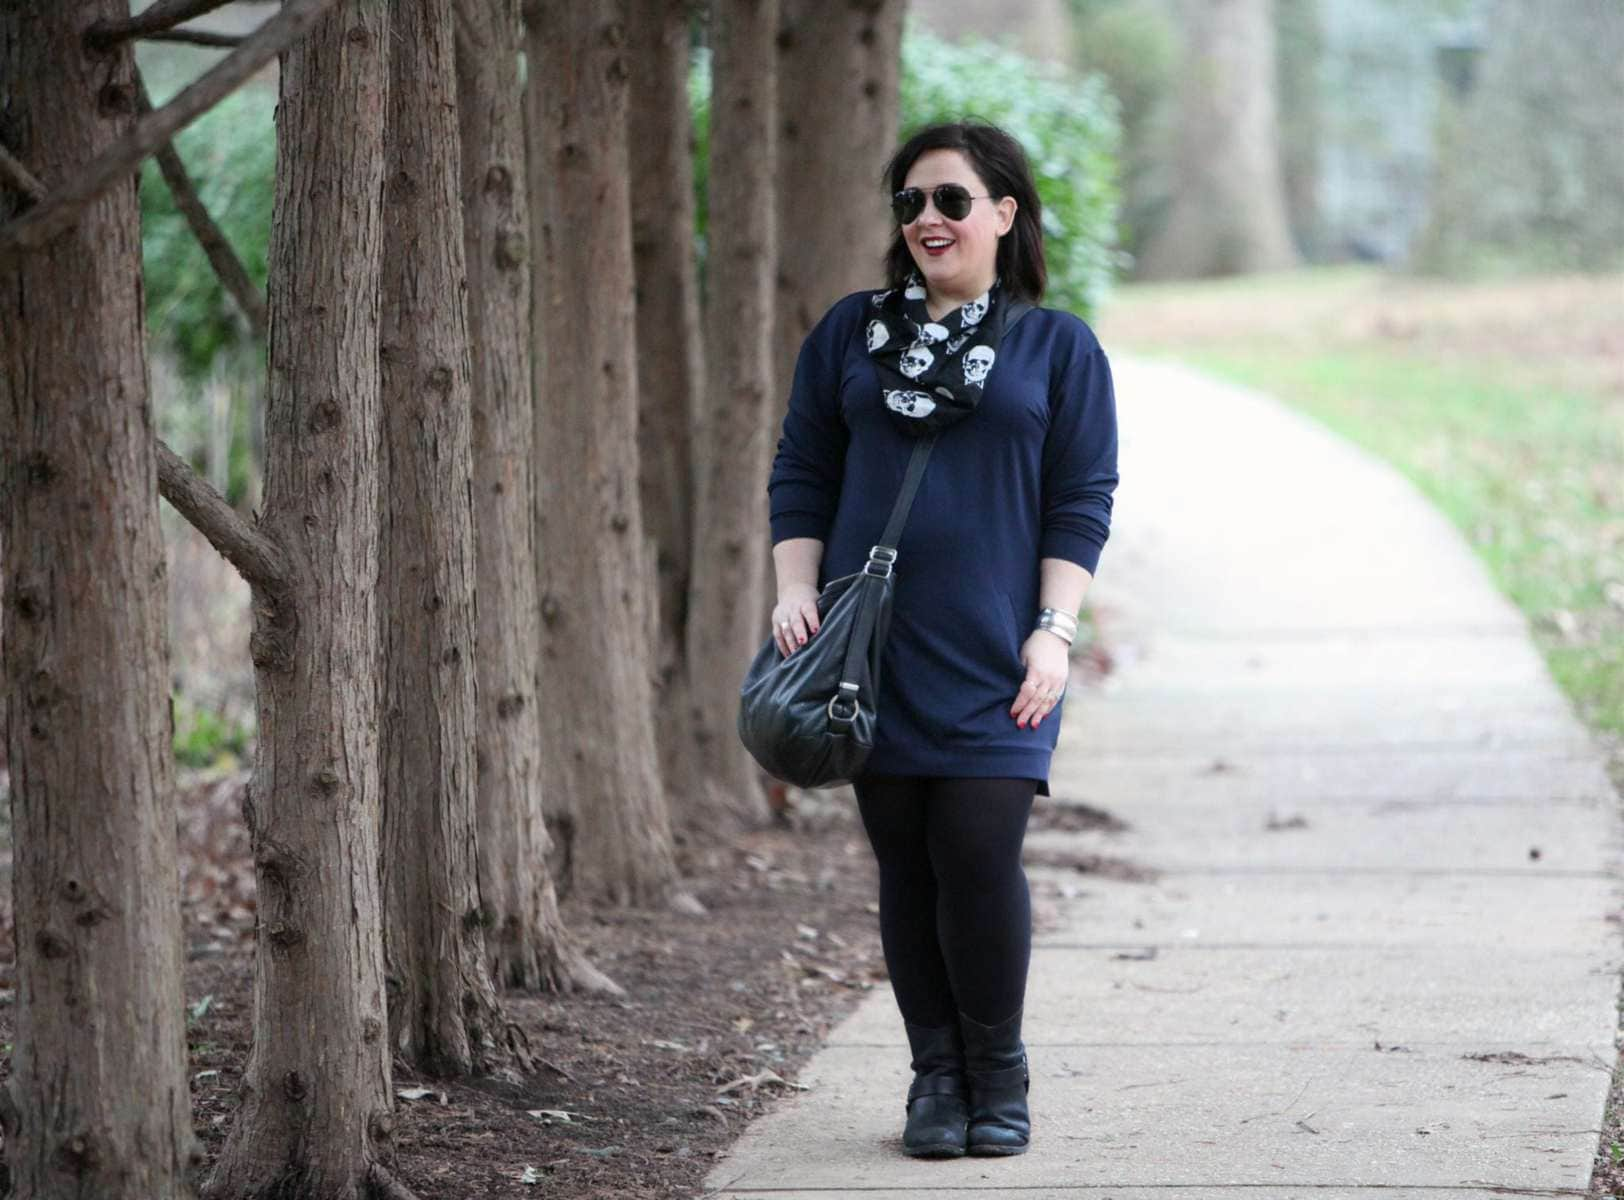 Wardrobe Oxygen, an over 40 fashion and personal style blog, featuring a navy sweatshirt dress and black harness boots